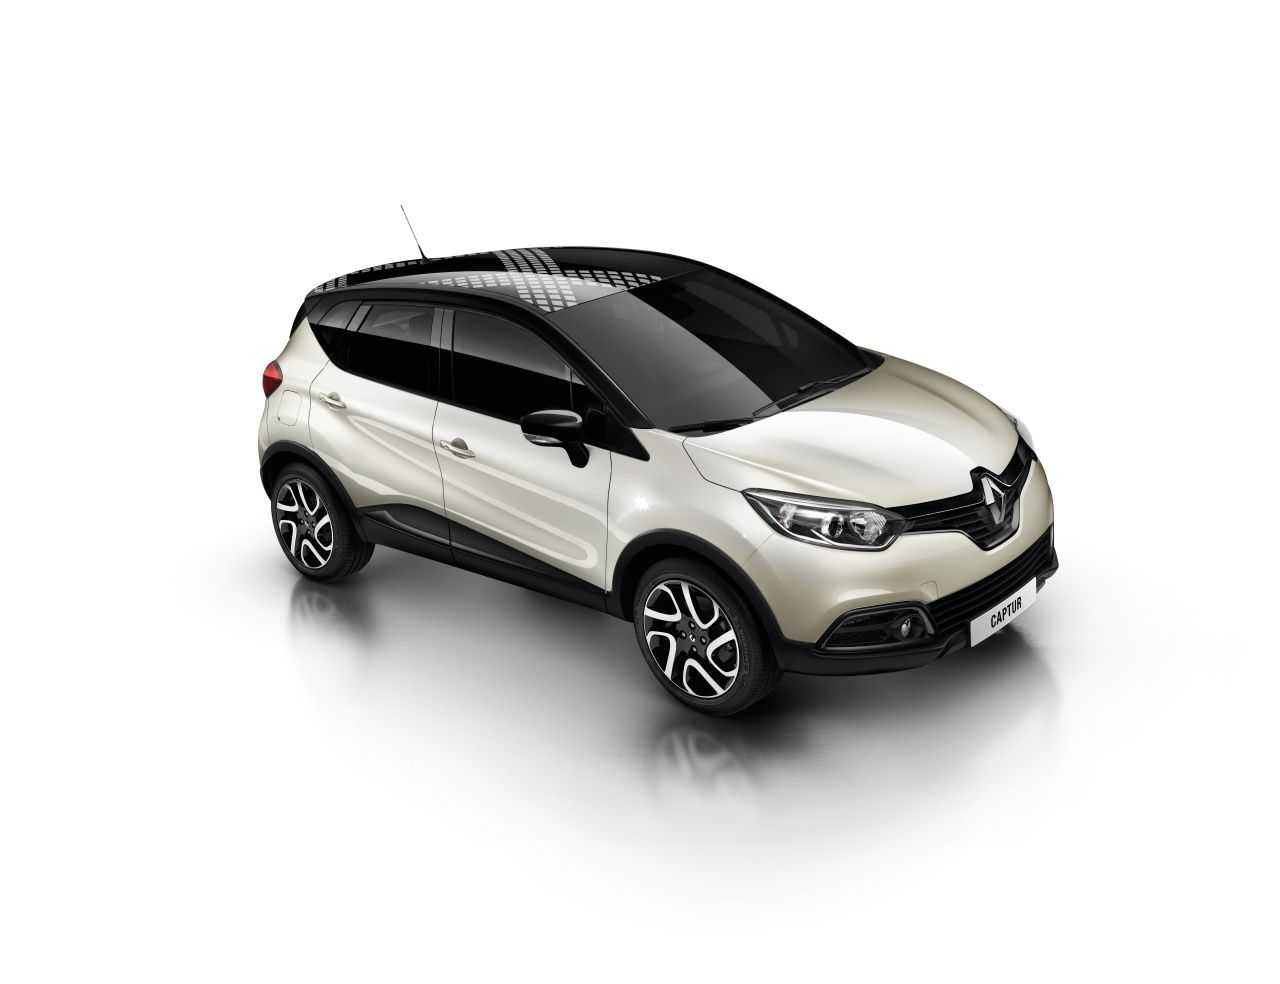 renault captur manhattan series renault pinterest manhattan series and cars. Black Bedroom Furniture Sets. Home Design Ideas